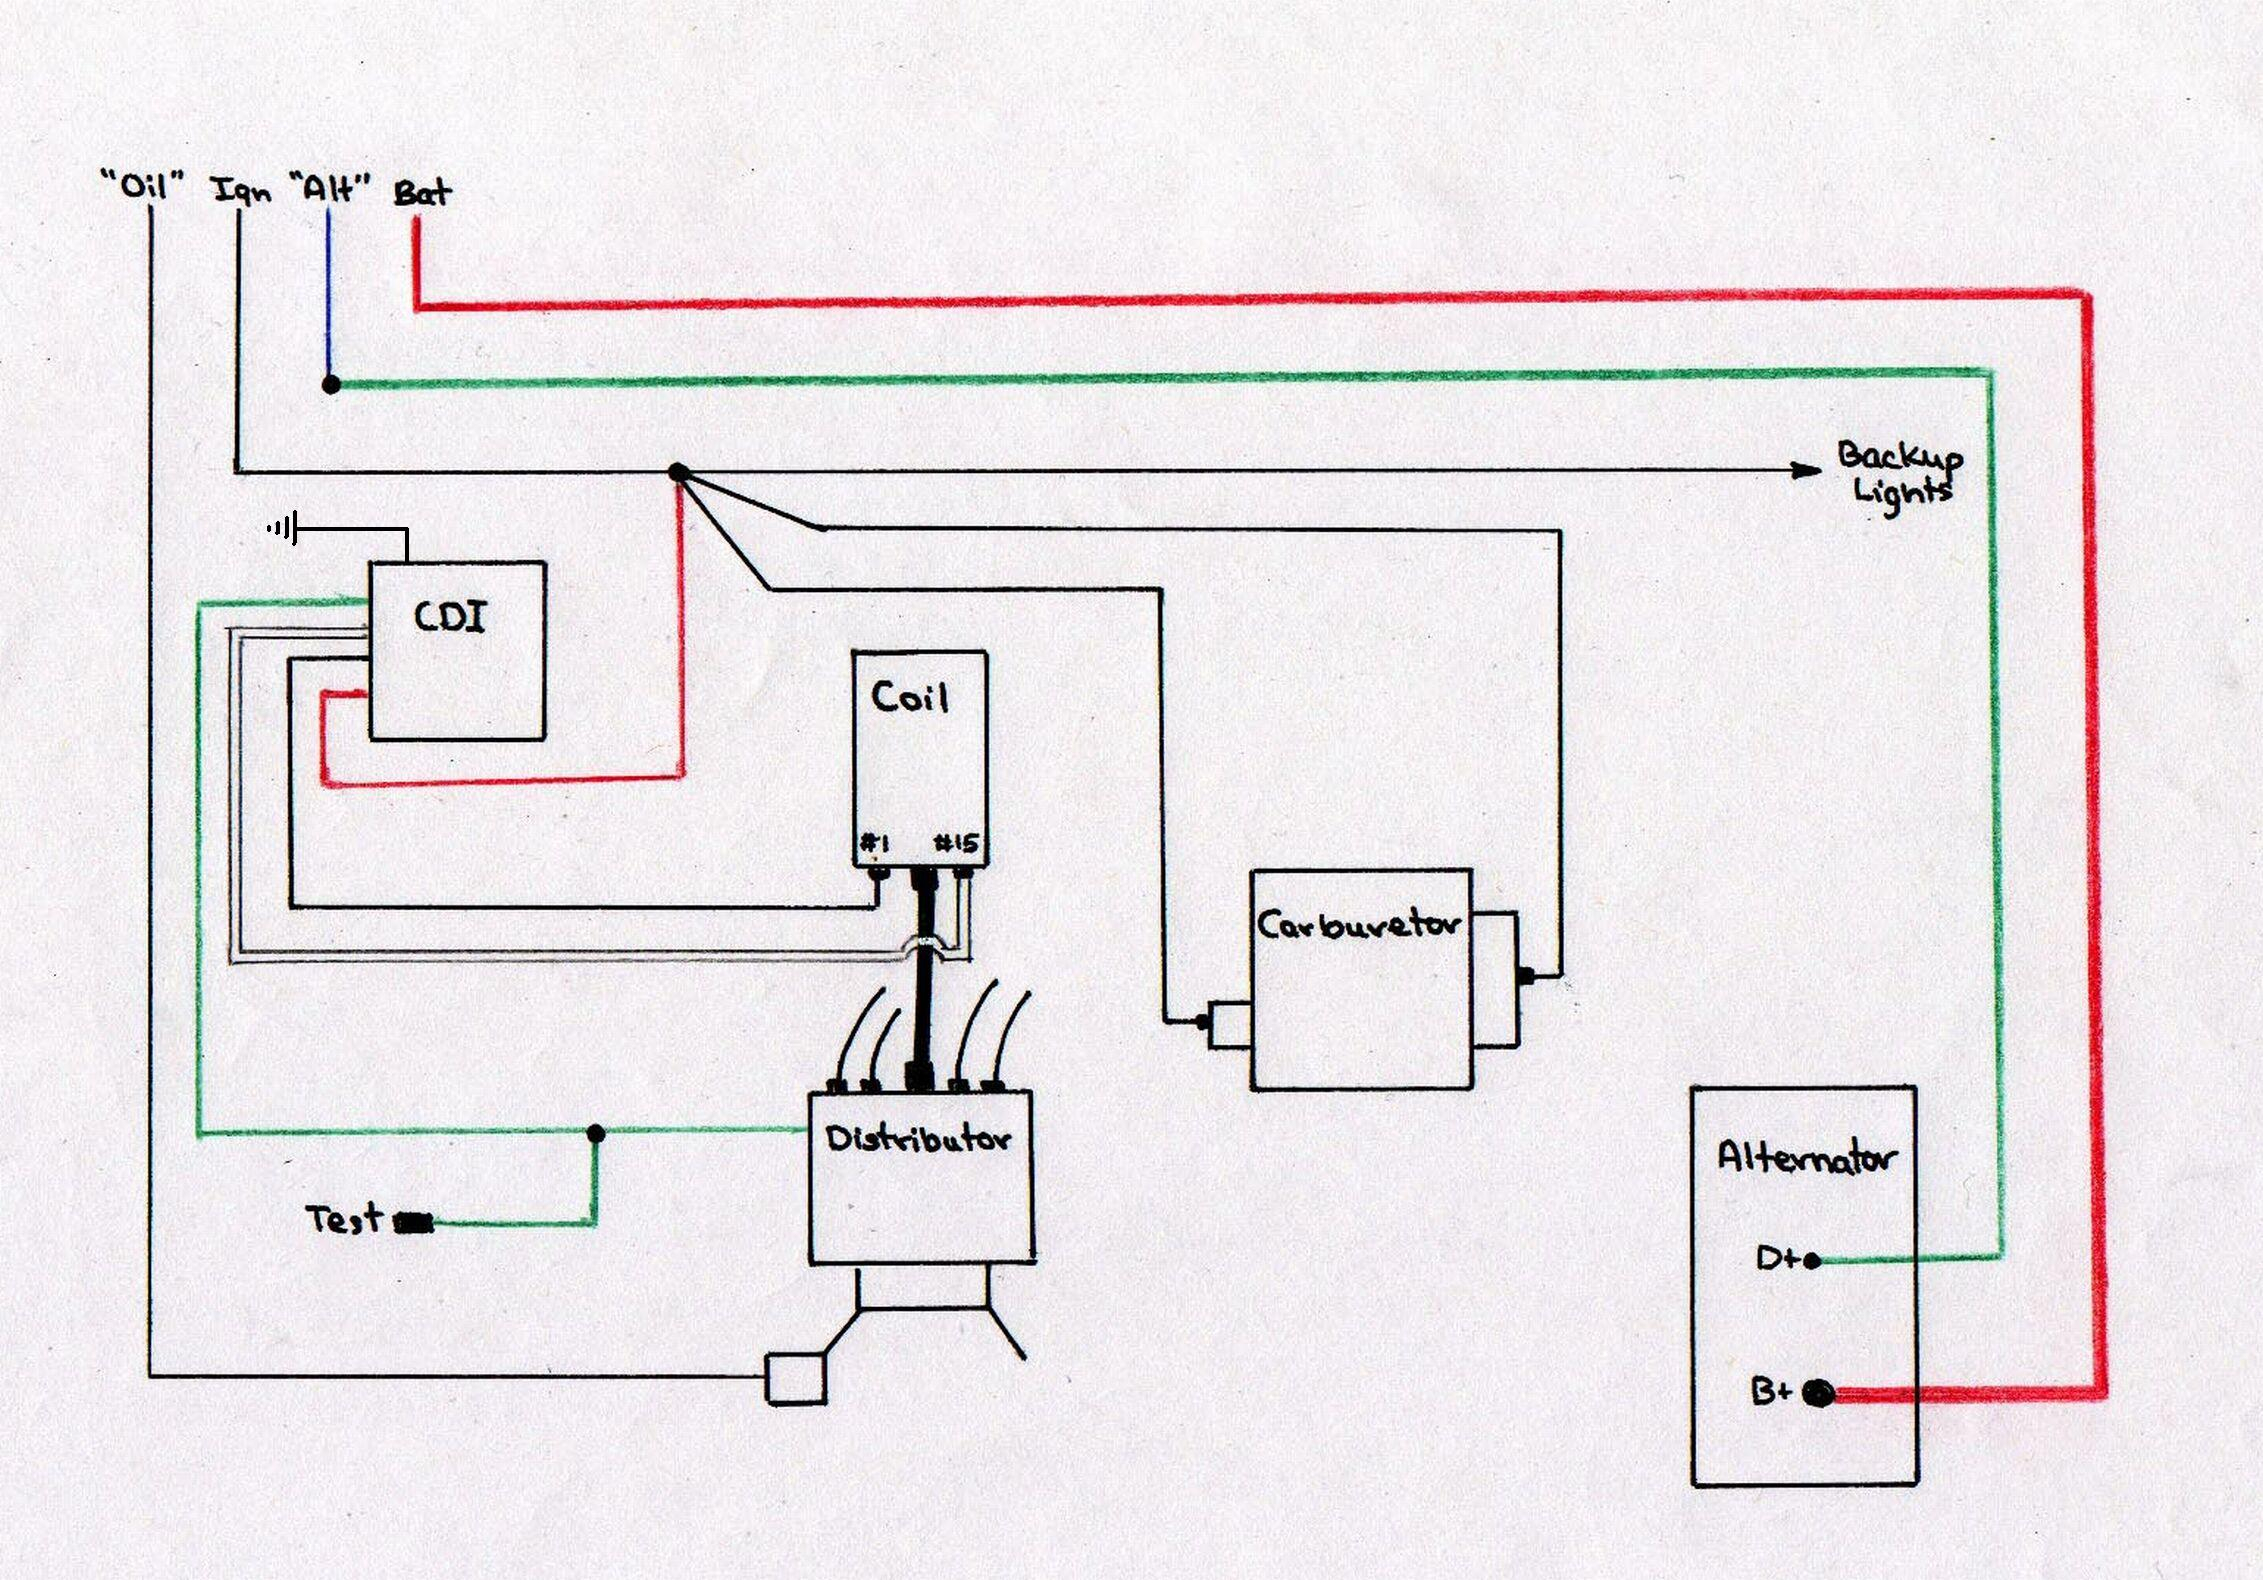 061 schematic jpg cdi and alternator wiring